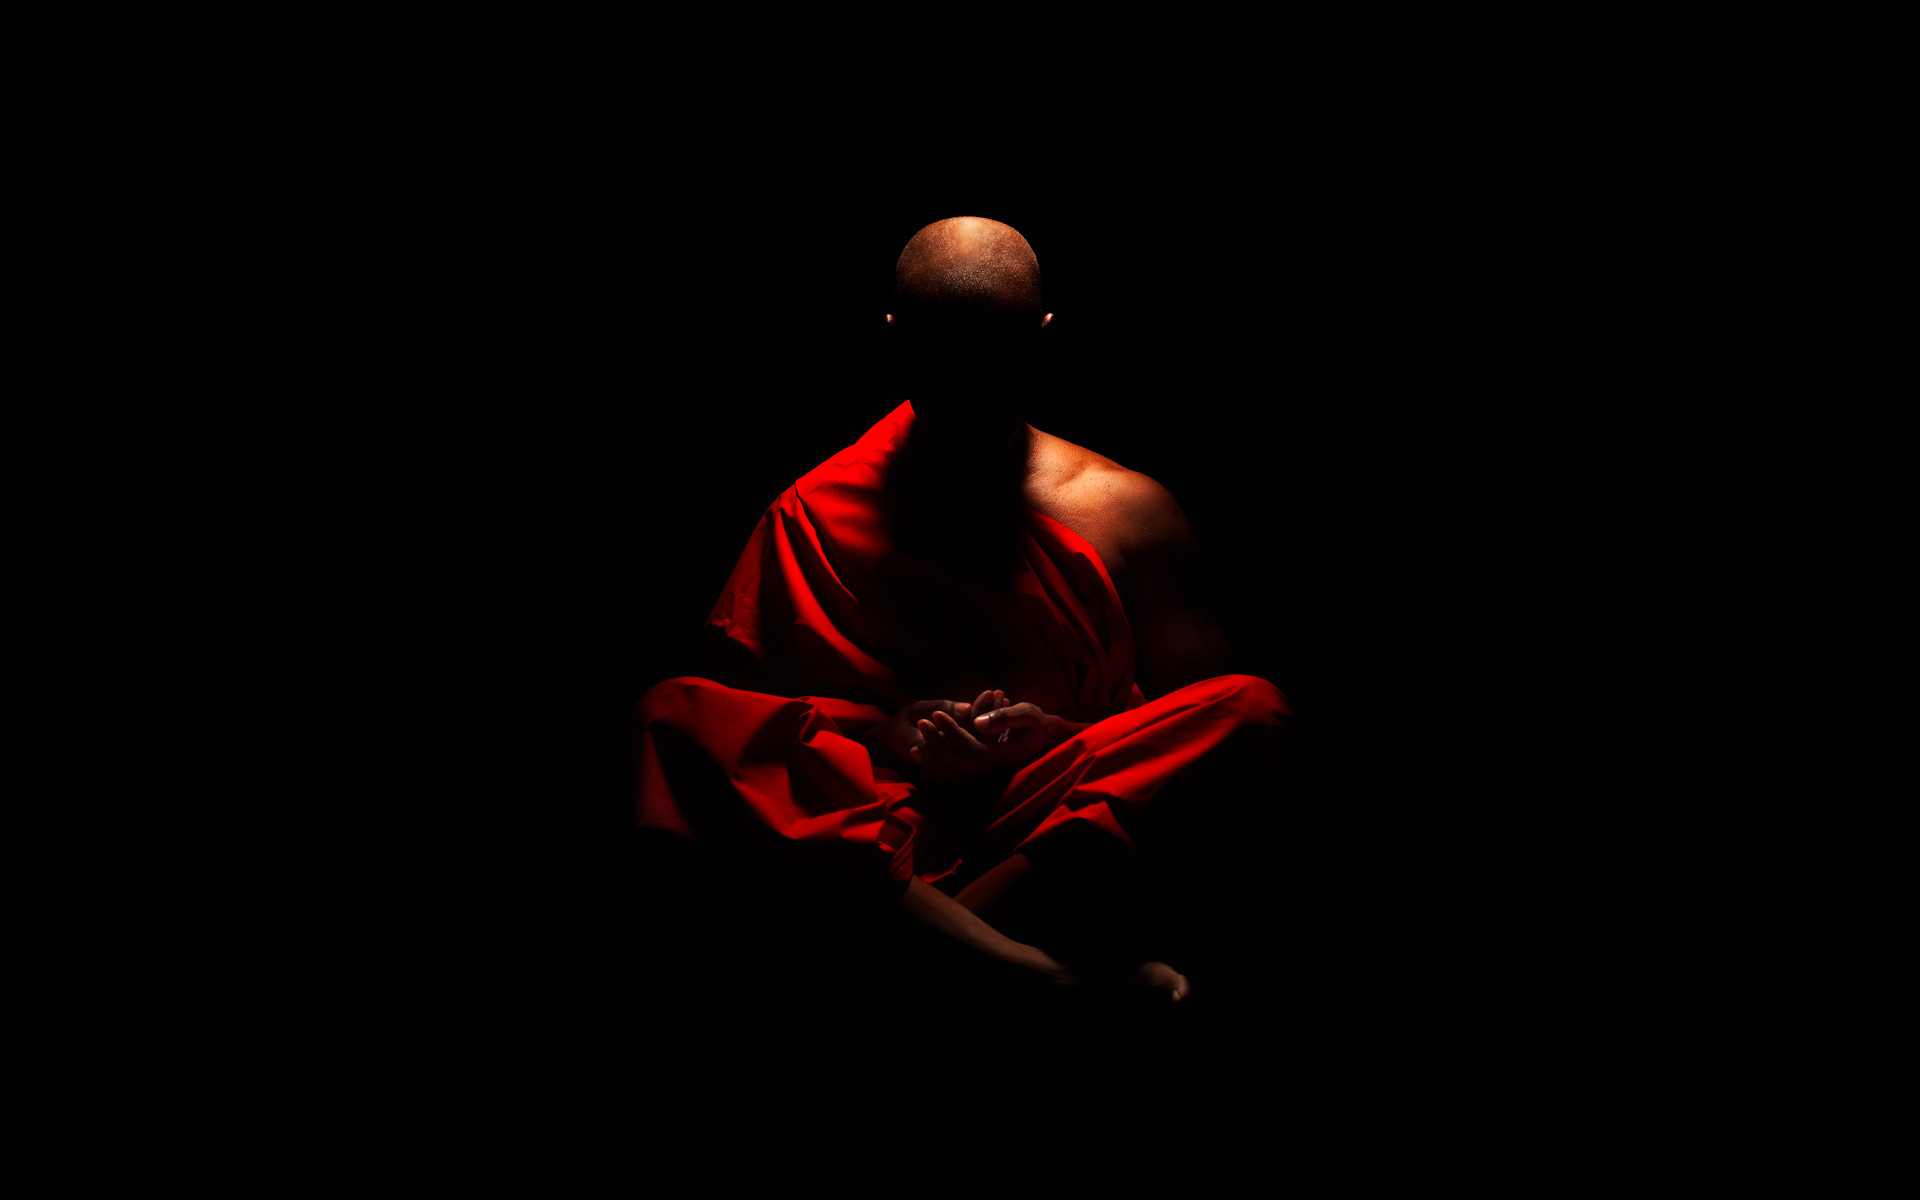 meditation Buddhism monk religion robe zen wallpaper background 1920x1200